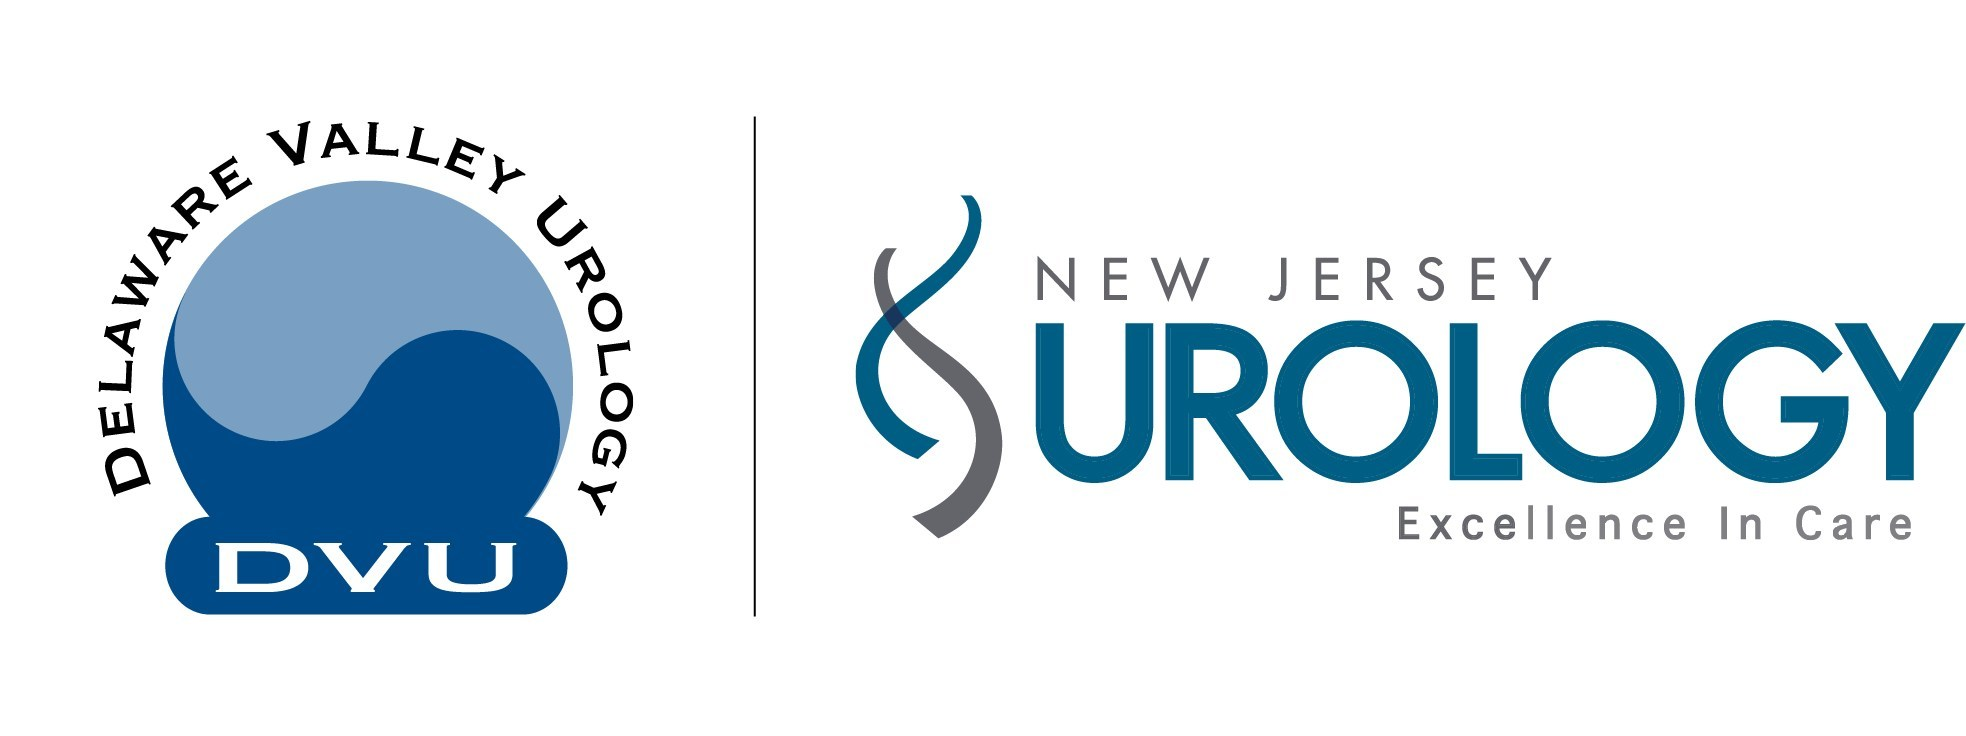 New Jersey Urology and Delaware Valley Urology Logos